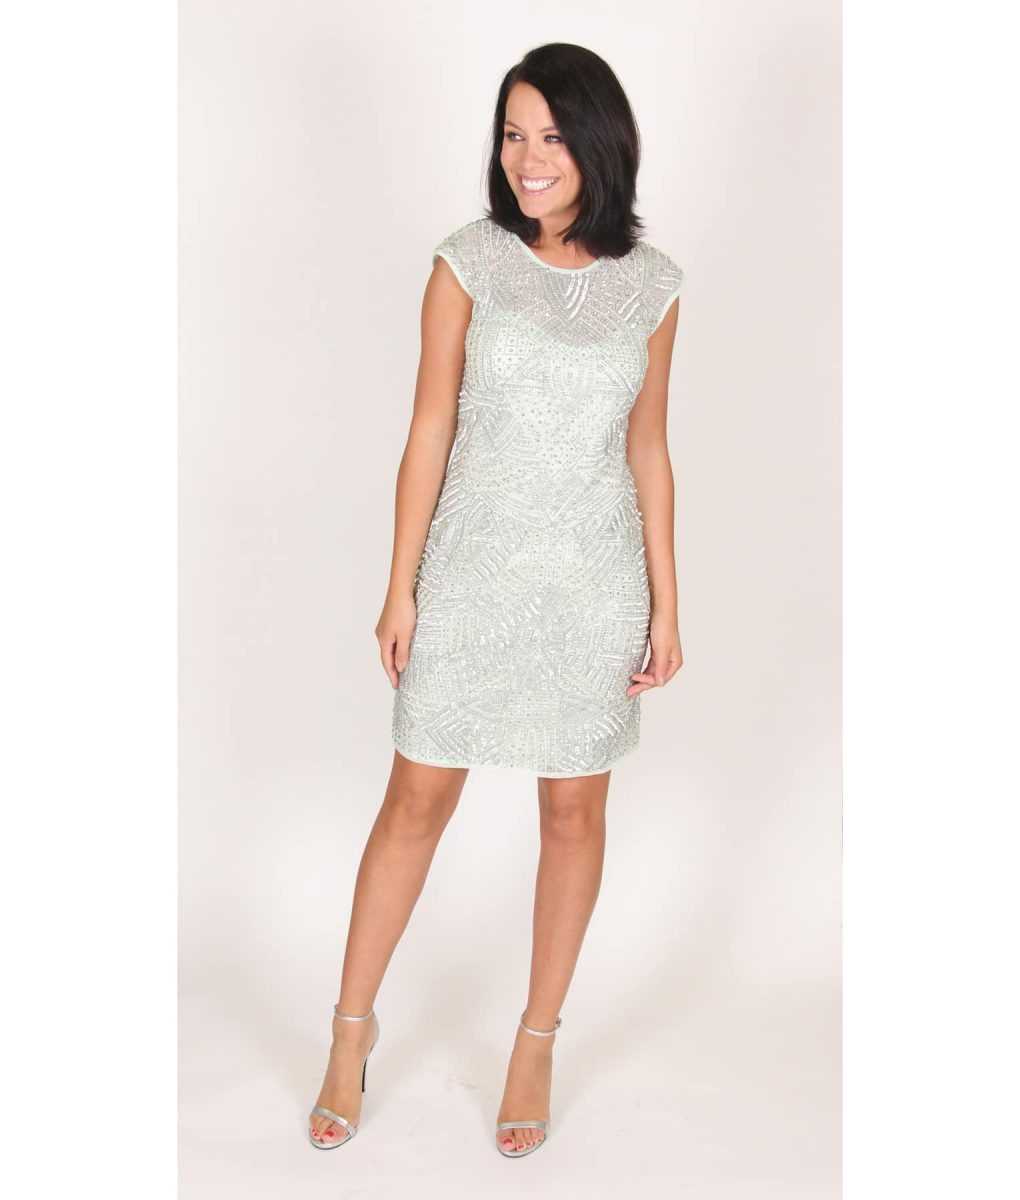 Alila Mint Sequin Party Dress by Lace & Beads.